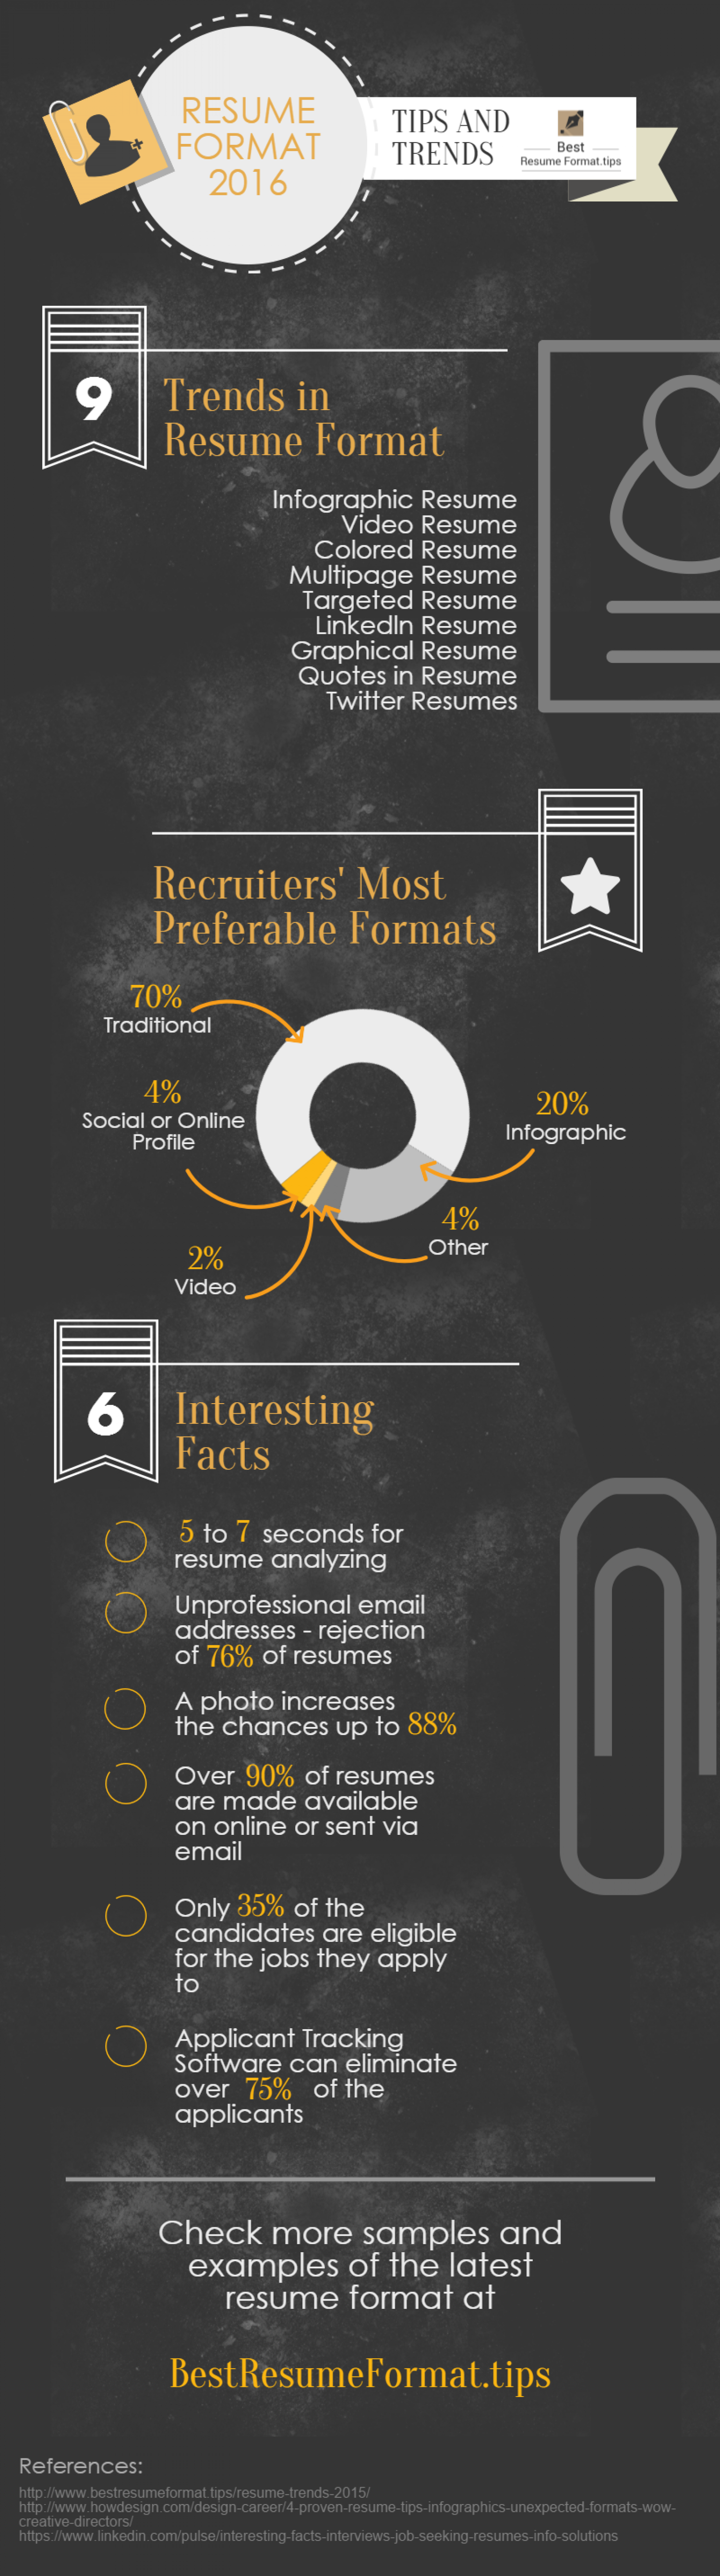 resume format 2016 tips and trends visual ly resume format 2016 tips and trends infographic